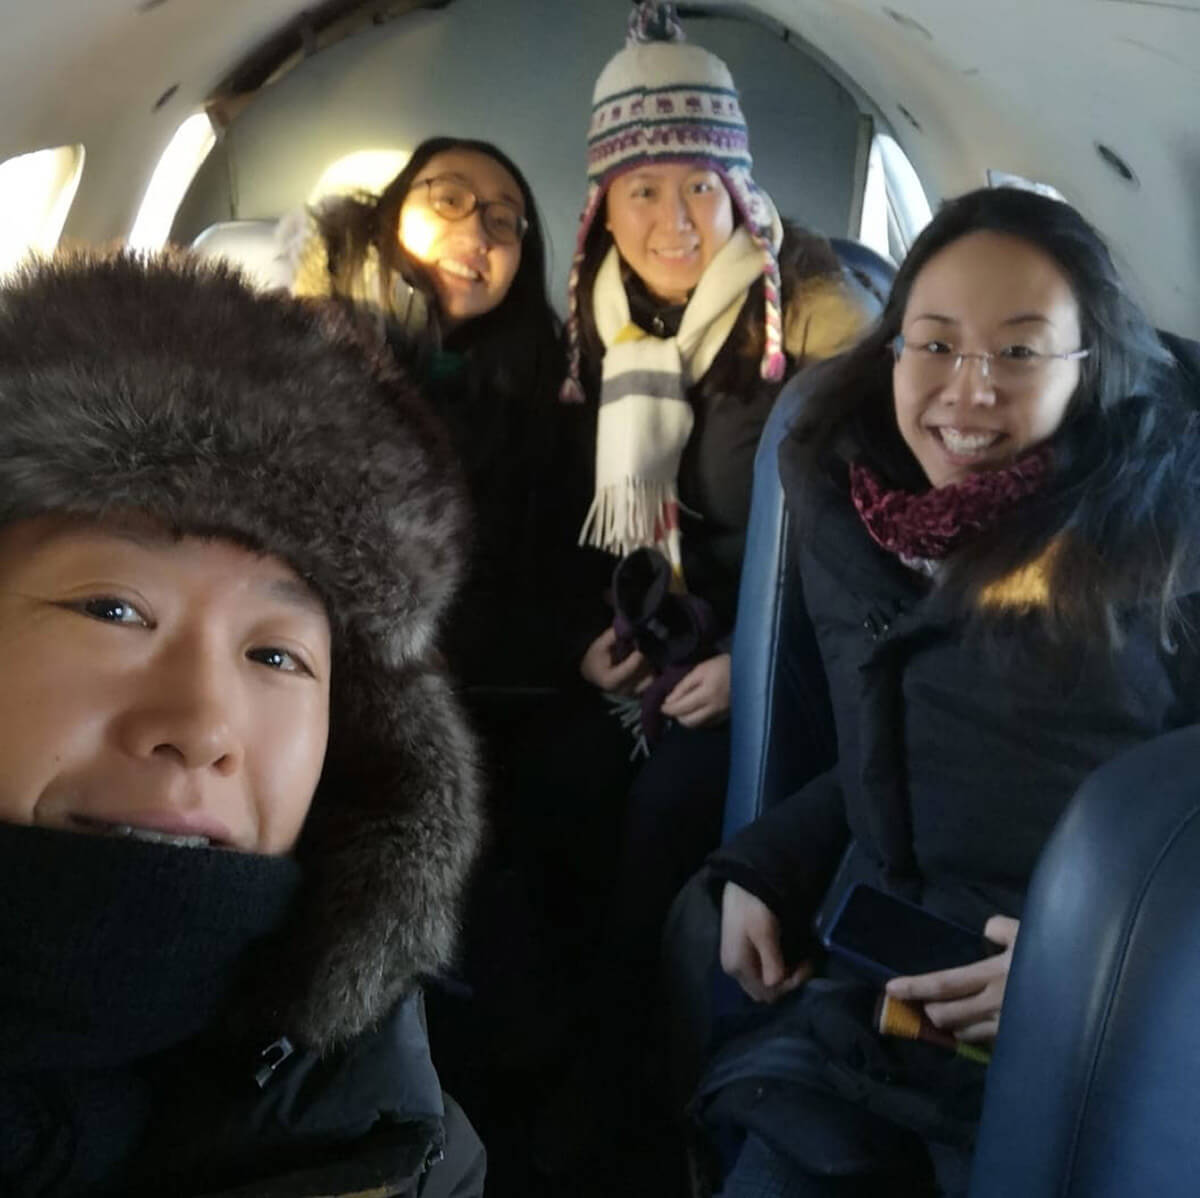 EMIC on plane from Norway House during Tour January/February 2019 (Photo courtesy of Ensemble Made in Canada)